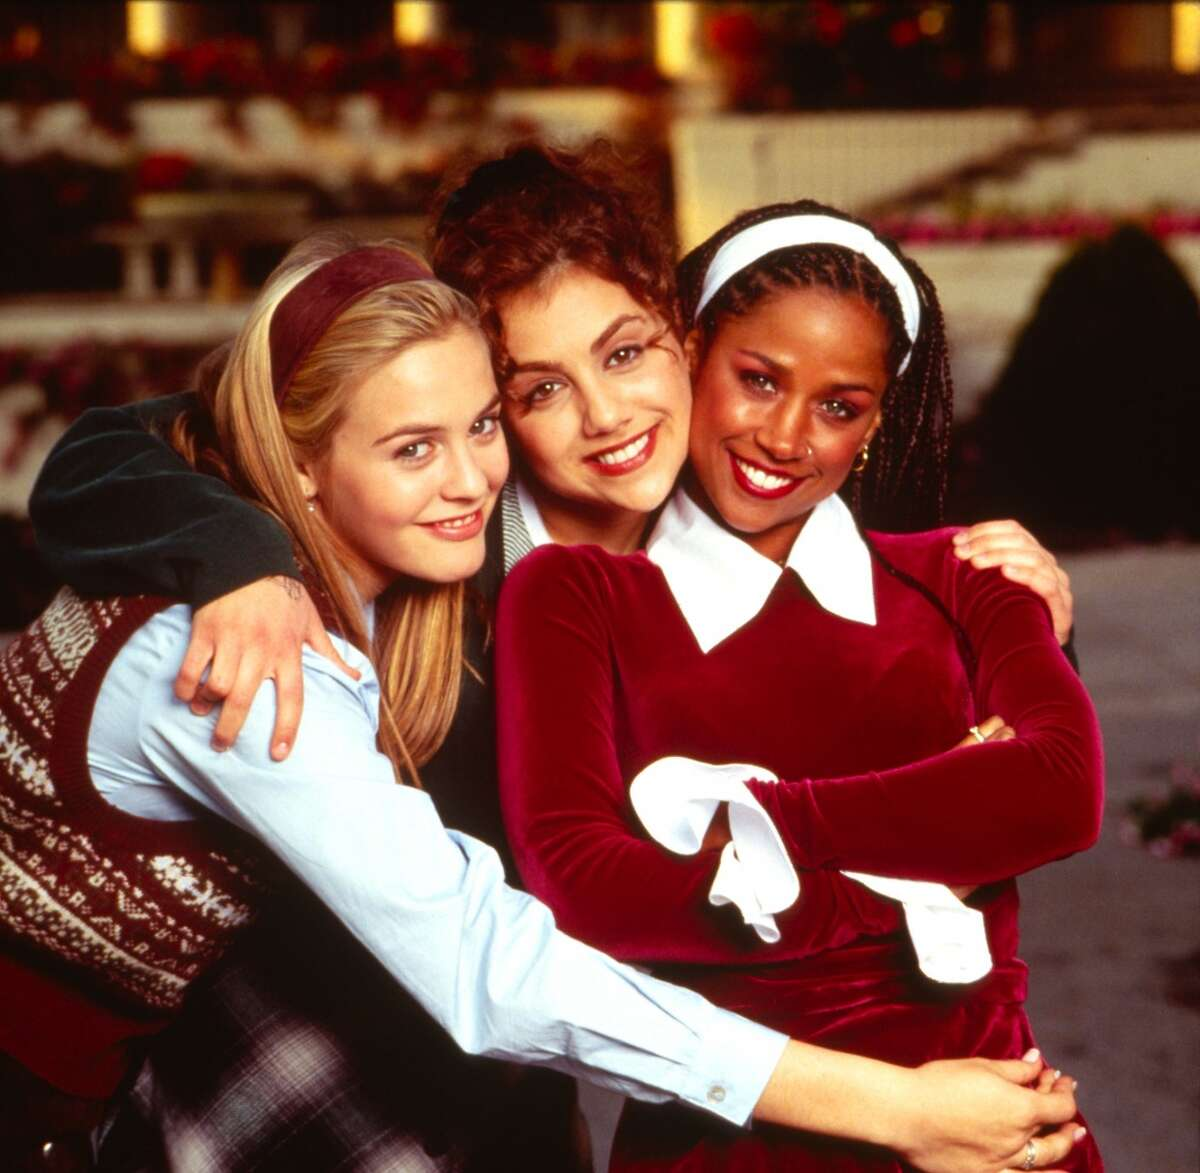 16. Clueless costumes